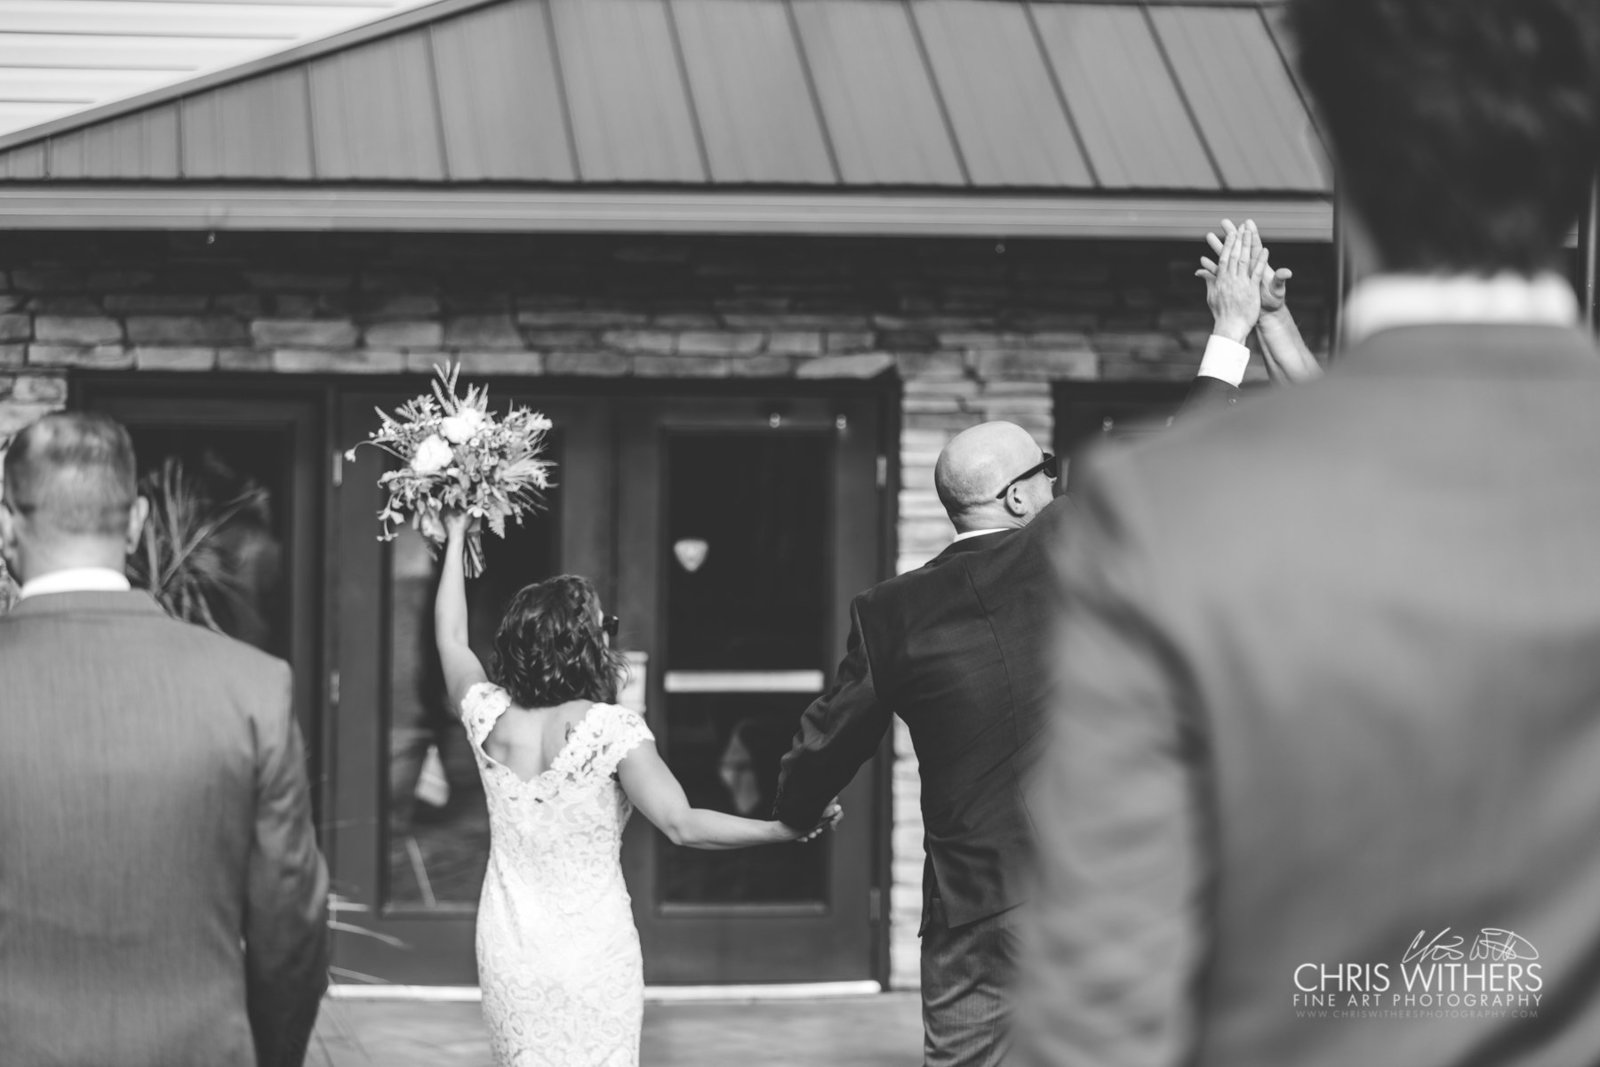 Springfield Illinois Wedding Photographer - Chris Withers Photography (84 of 159)